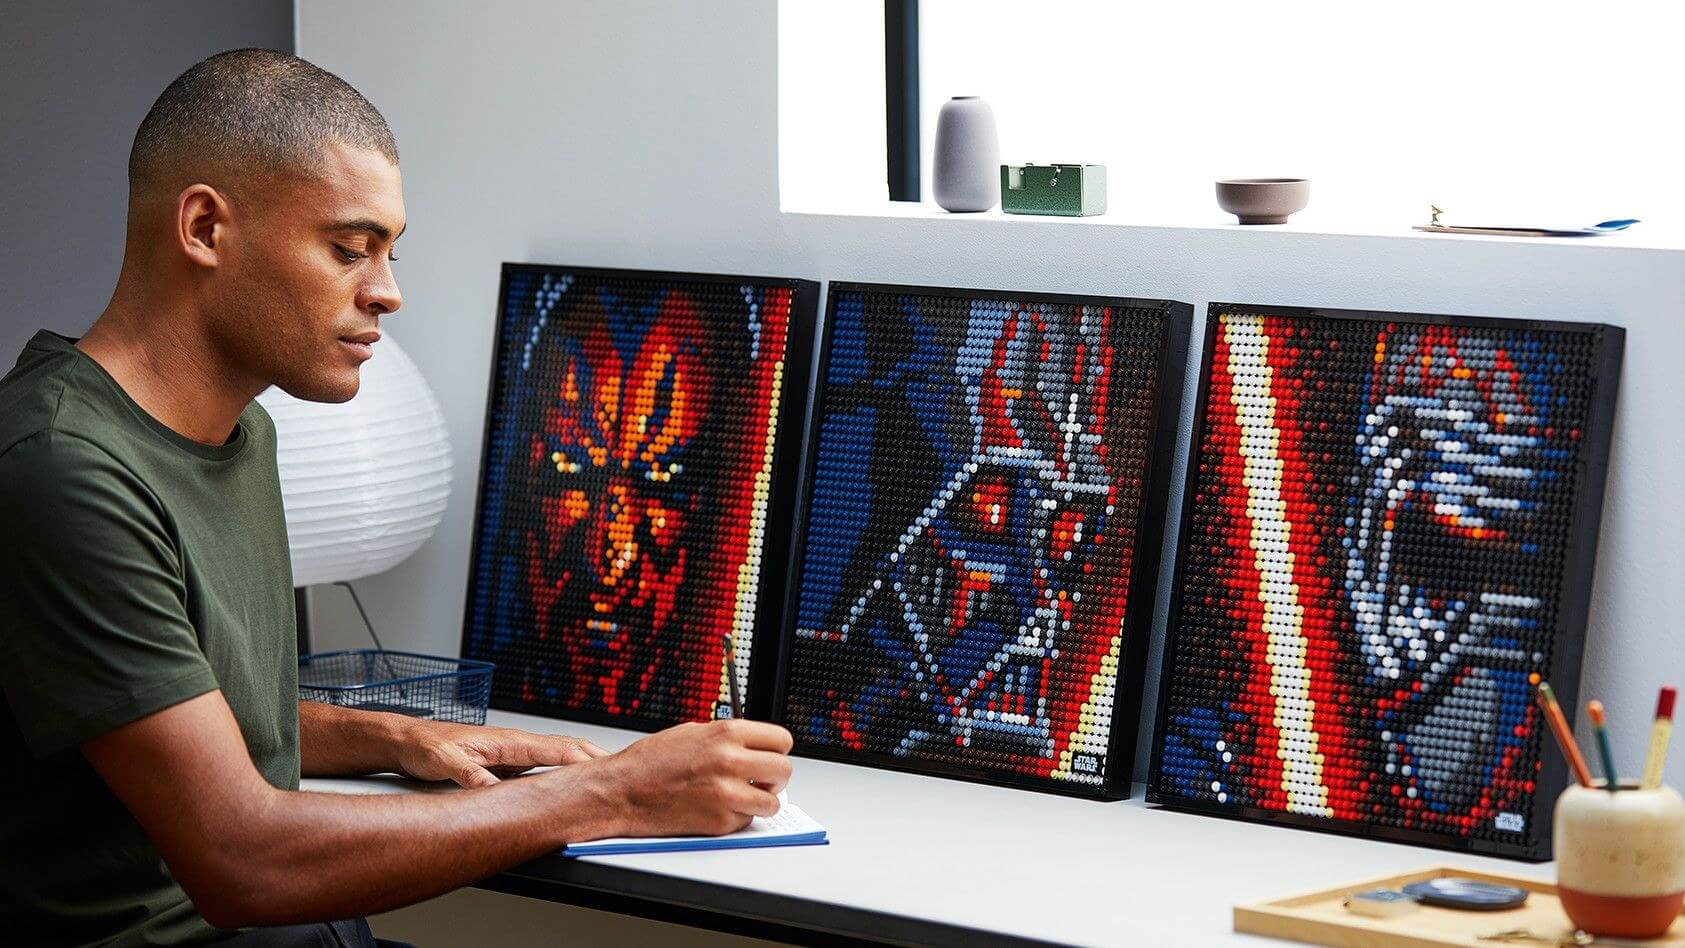 Lego's new Art line lets you build posters of Darth Vader, Iron Man, and more